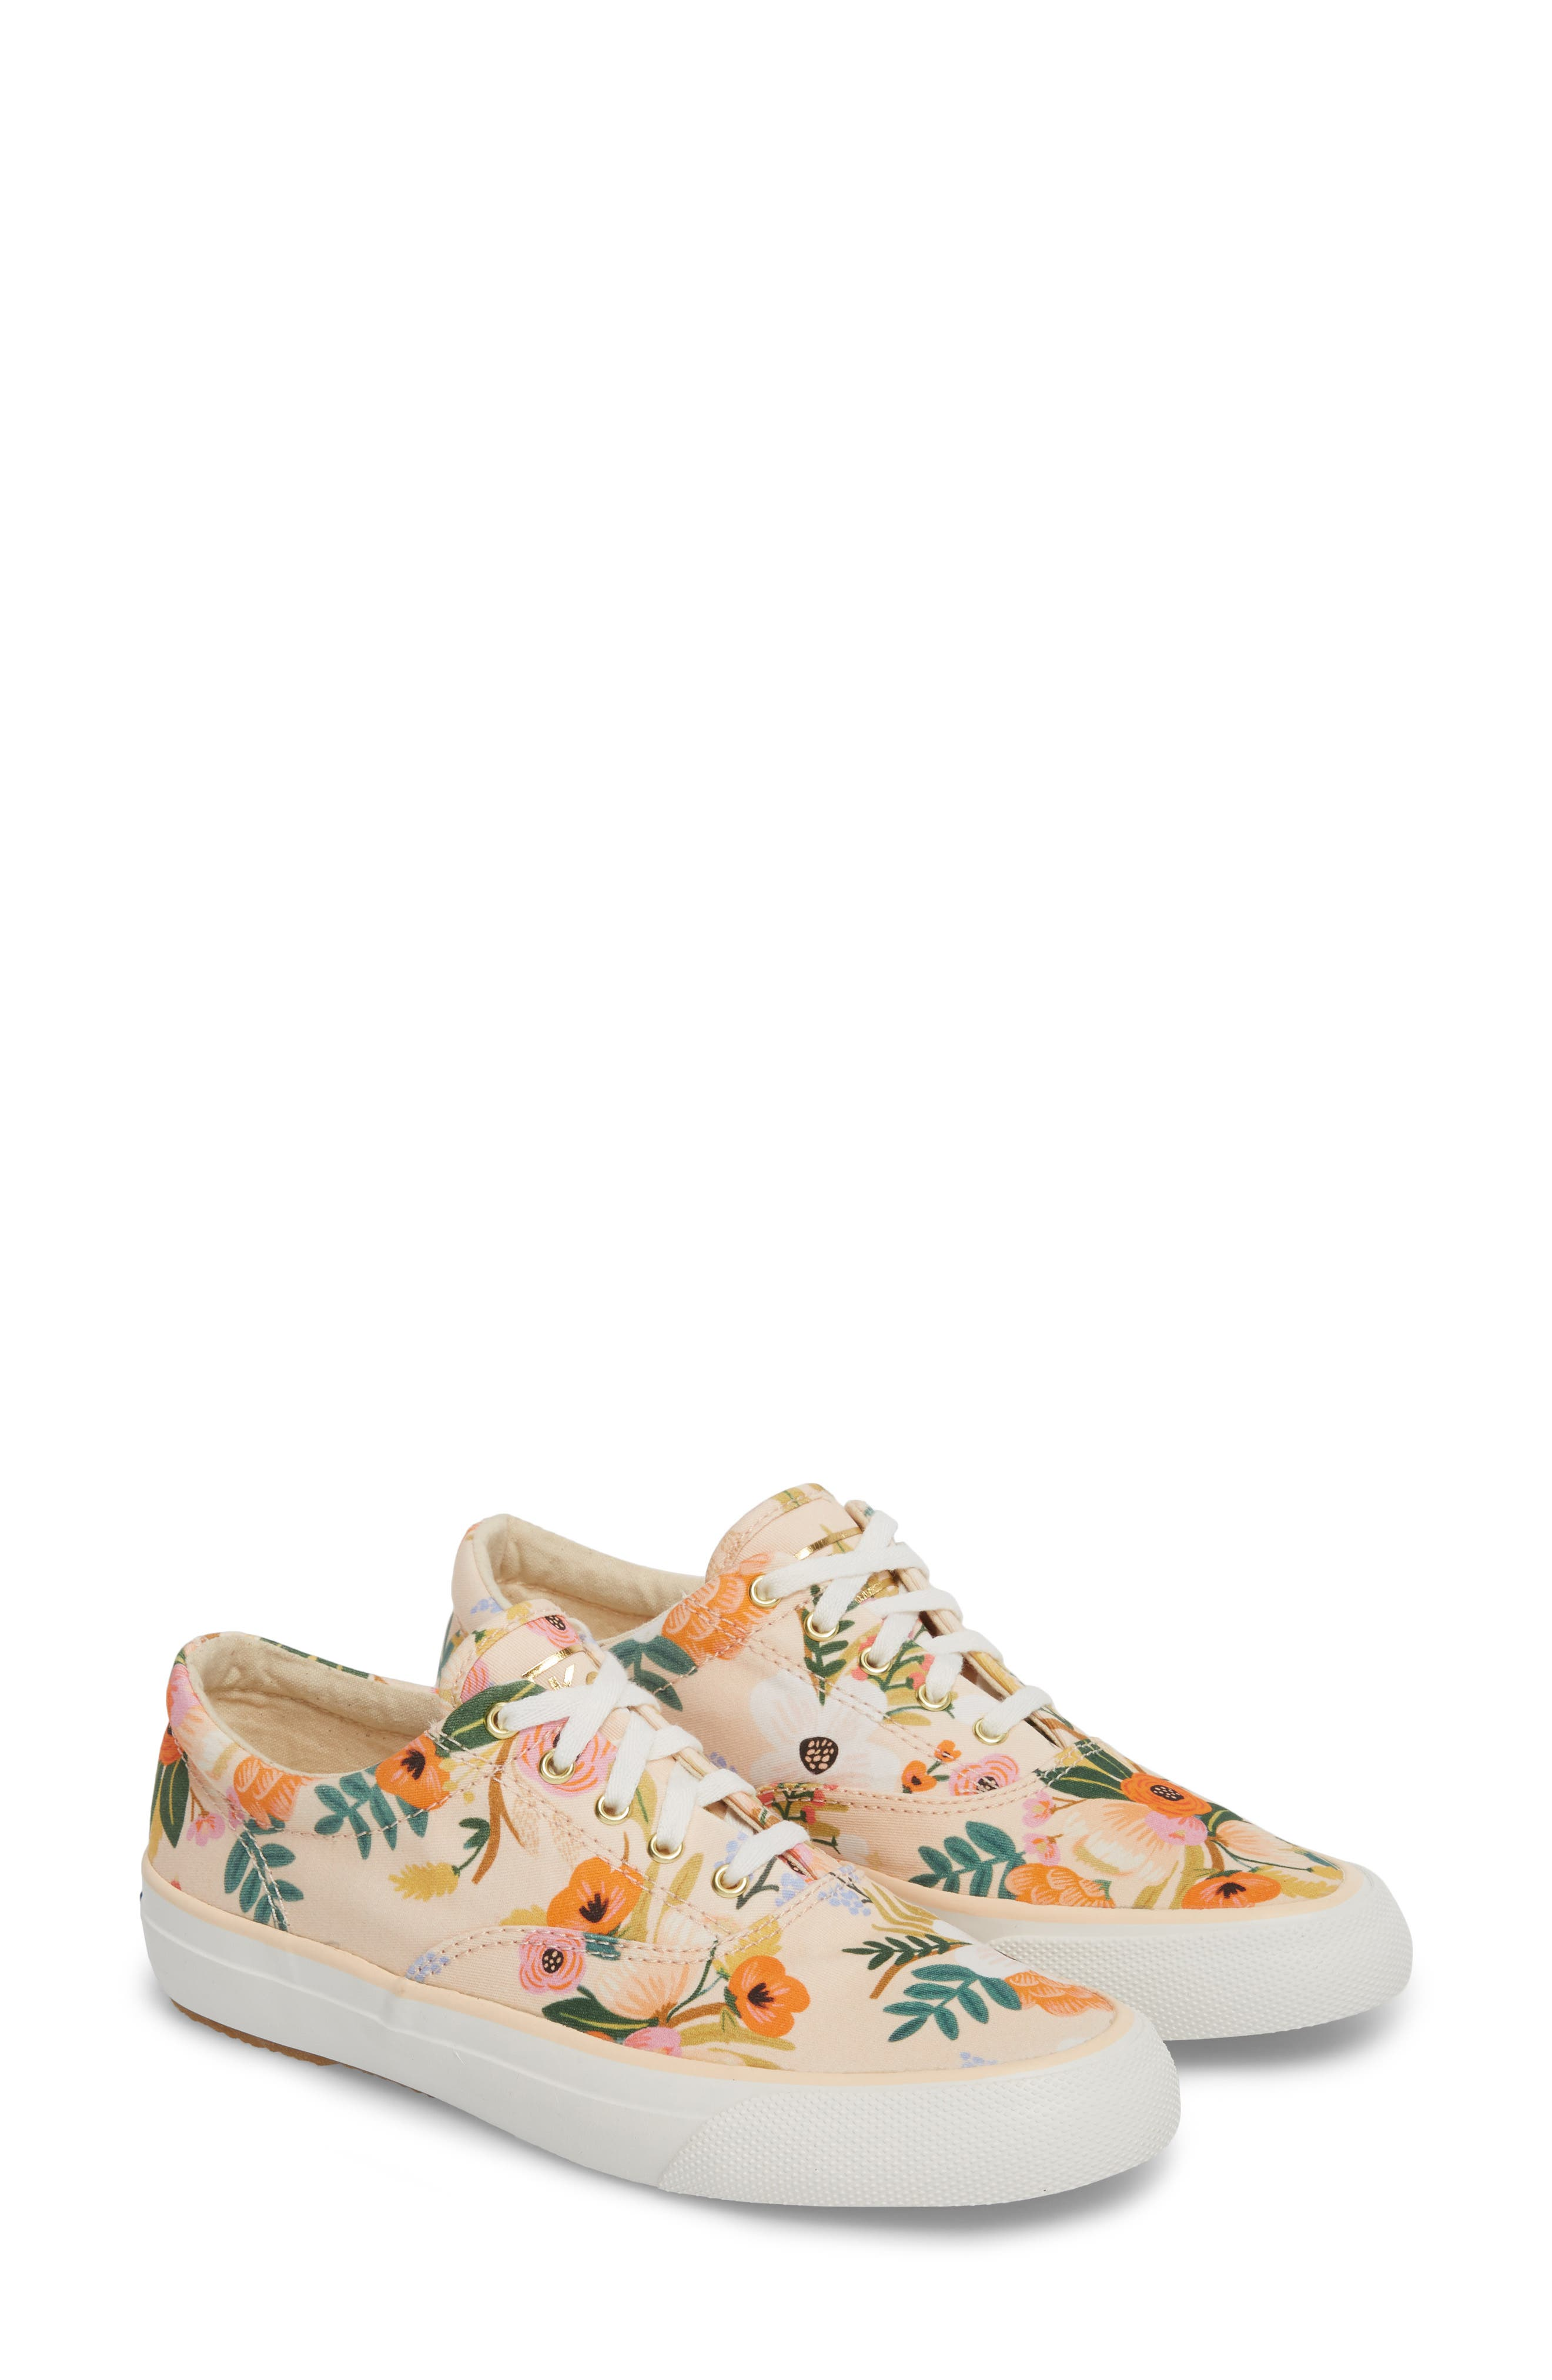 x Rifle Paper Co. Anchor Lively Floral Slip-On Sneaker,                             Alternate thumbnail 3, color,                             Pink